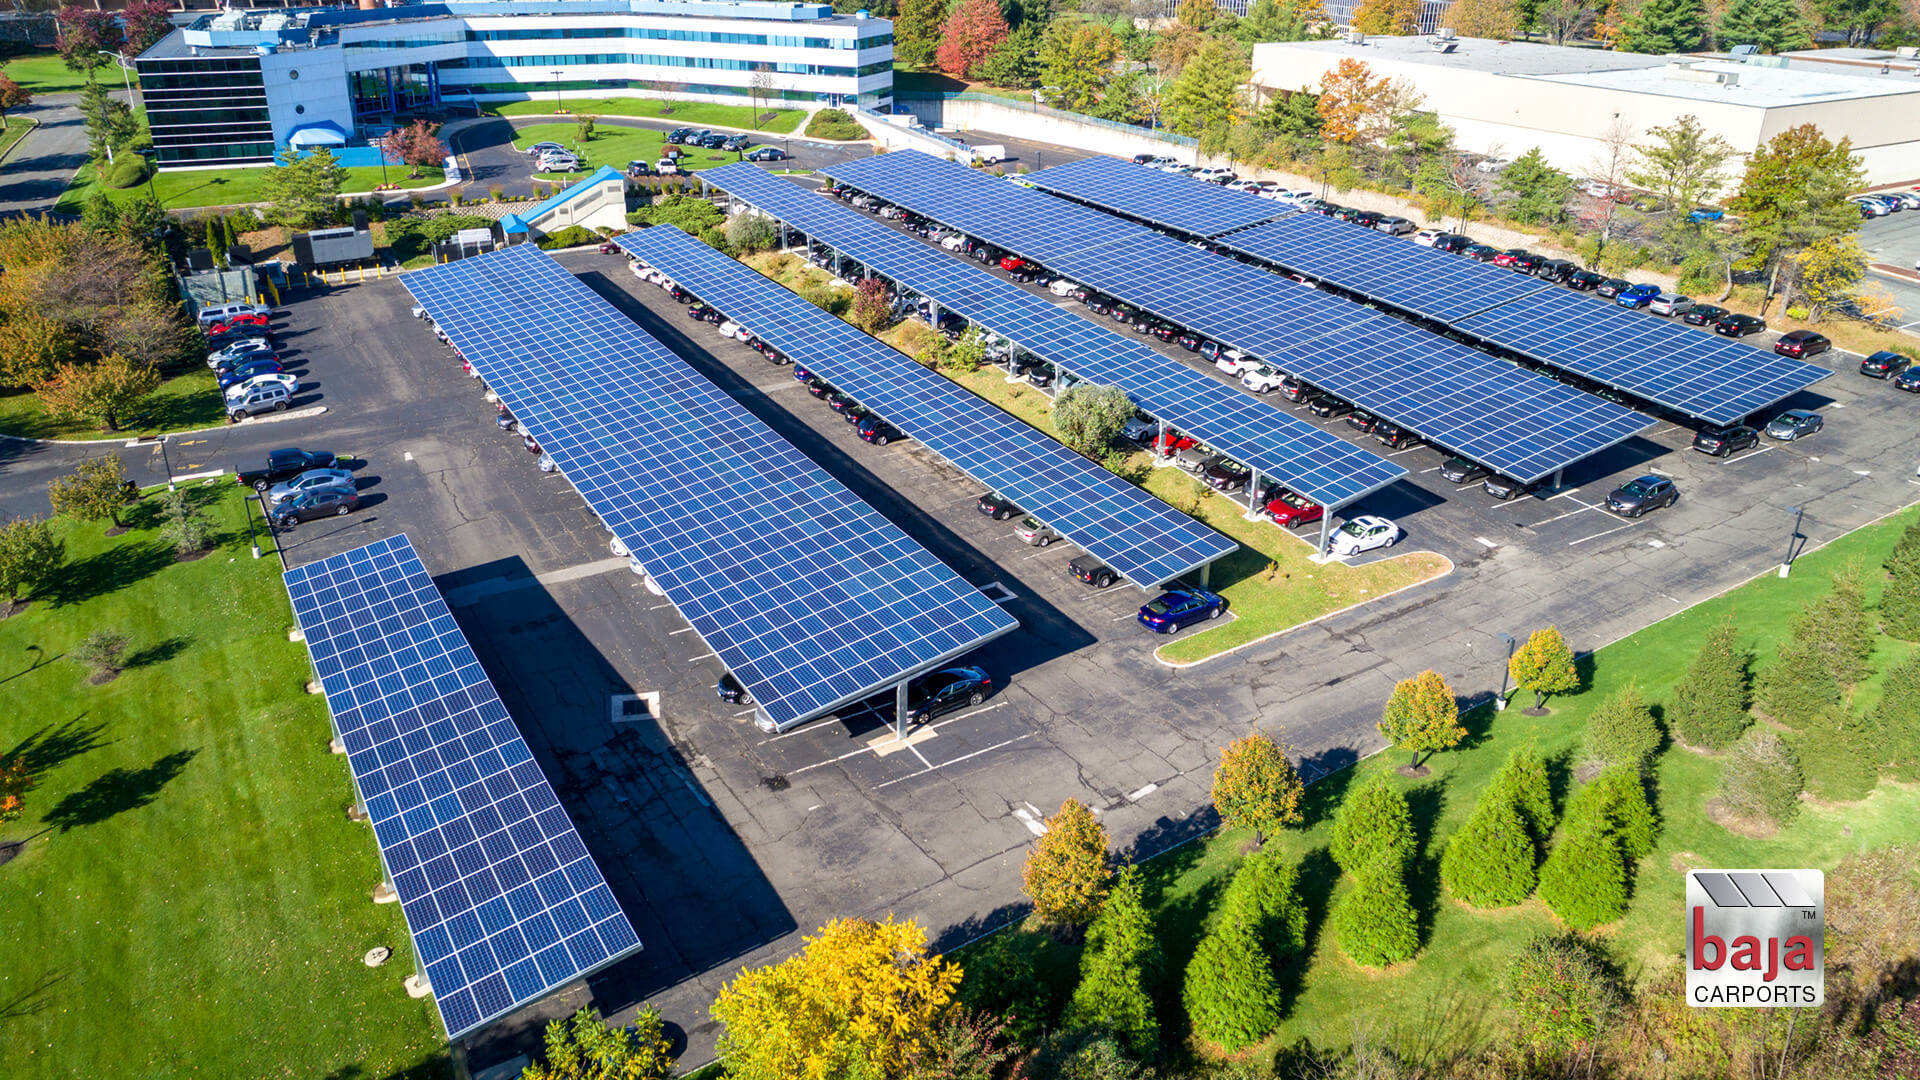 employee solar covered parking lot in Woodland New Jersey